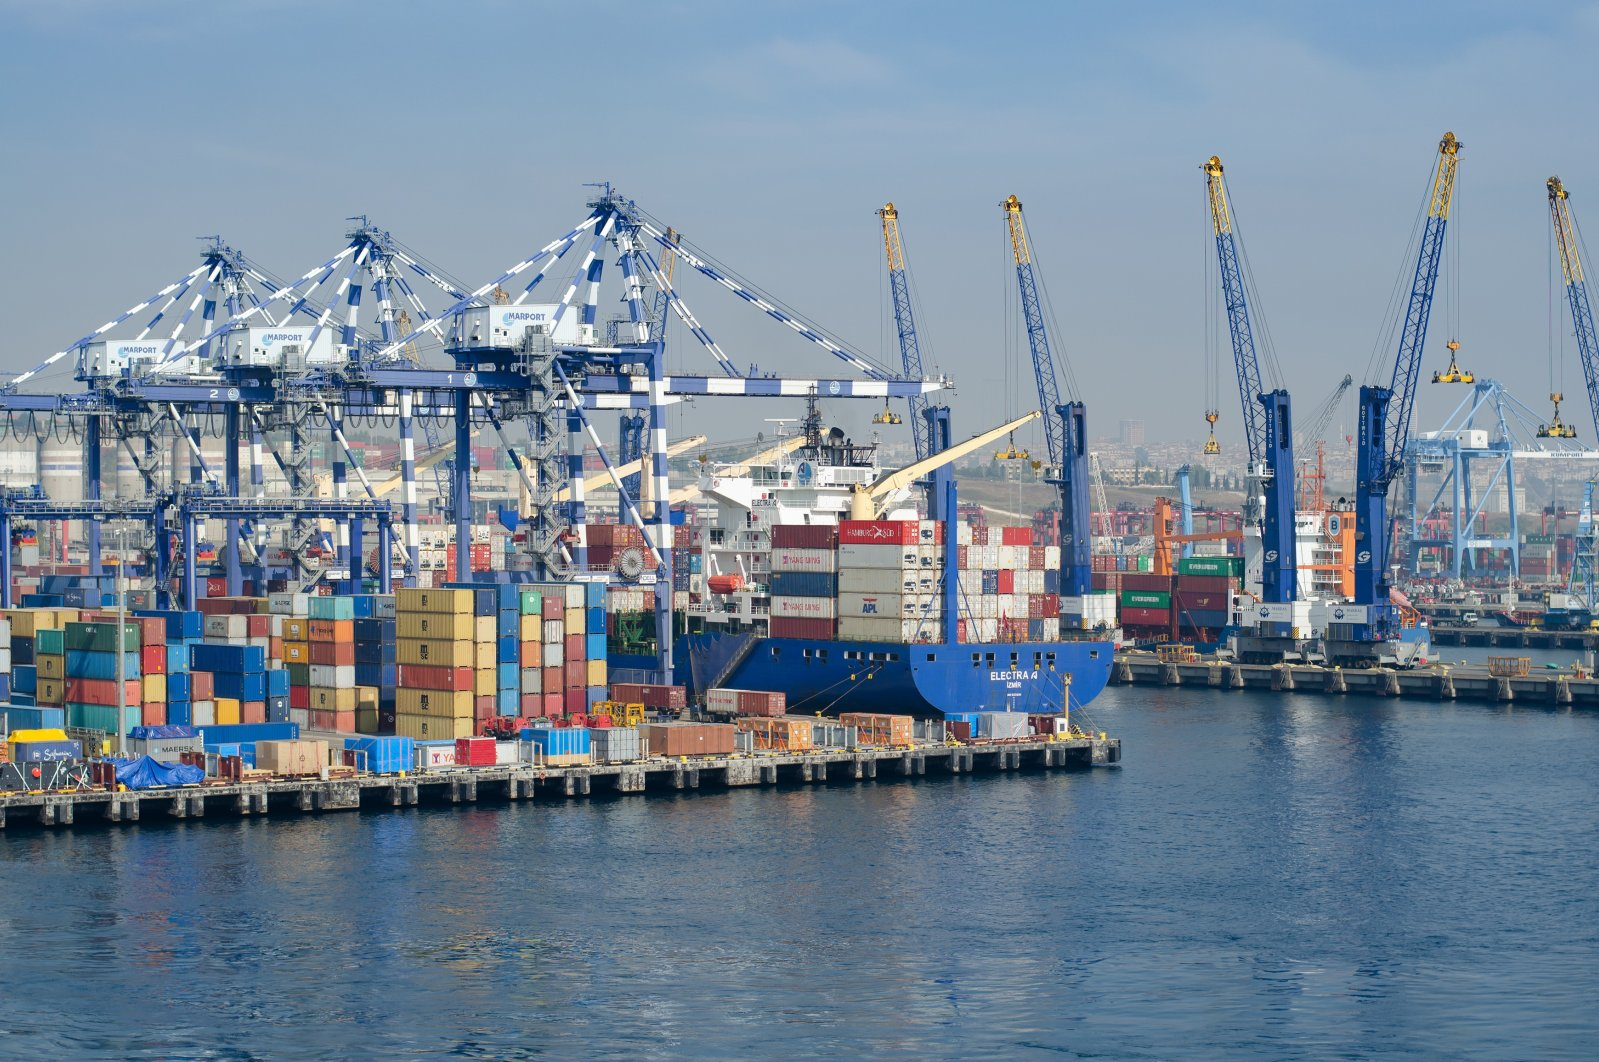 A view of the port of Ambarlı, in Istanbul, Turkey, Oct. 3, 2016. (Shutterstock Photo)